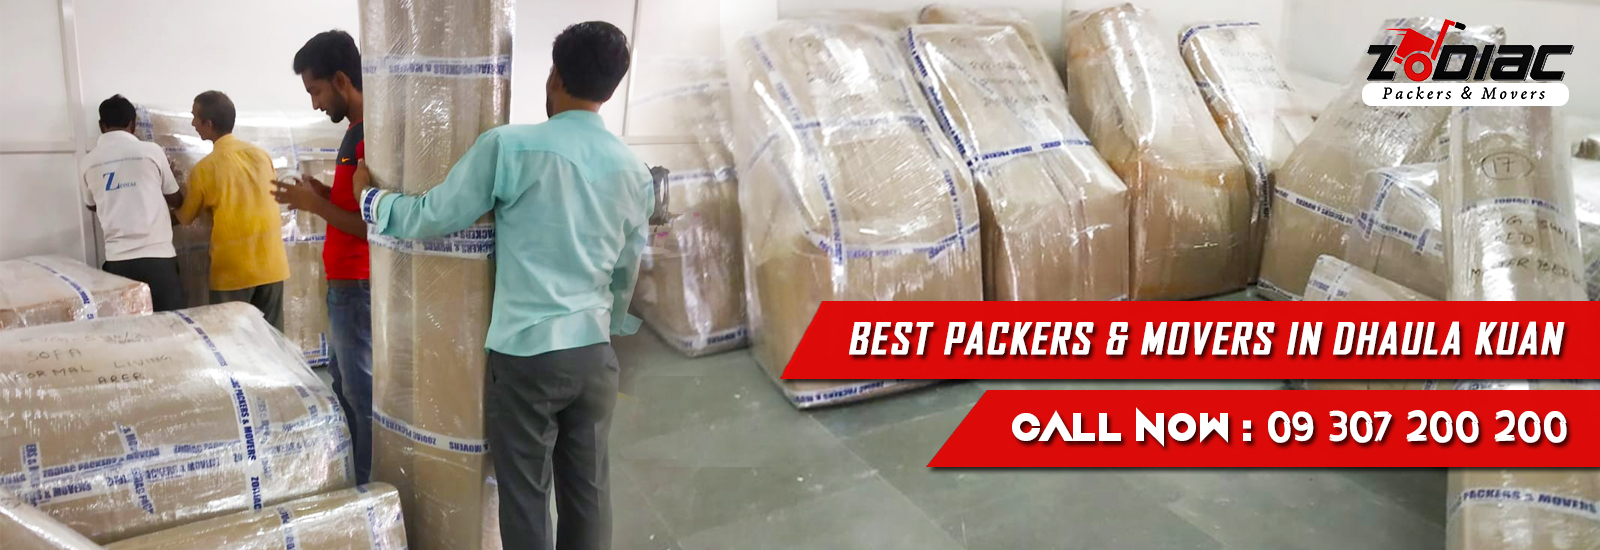 Packers and Movers in Dhaula Kuan